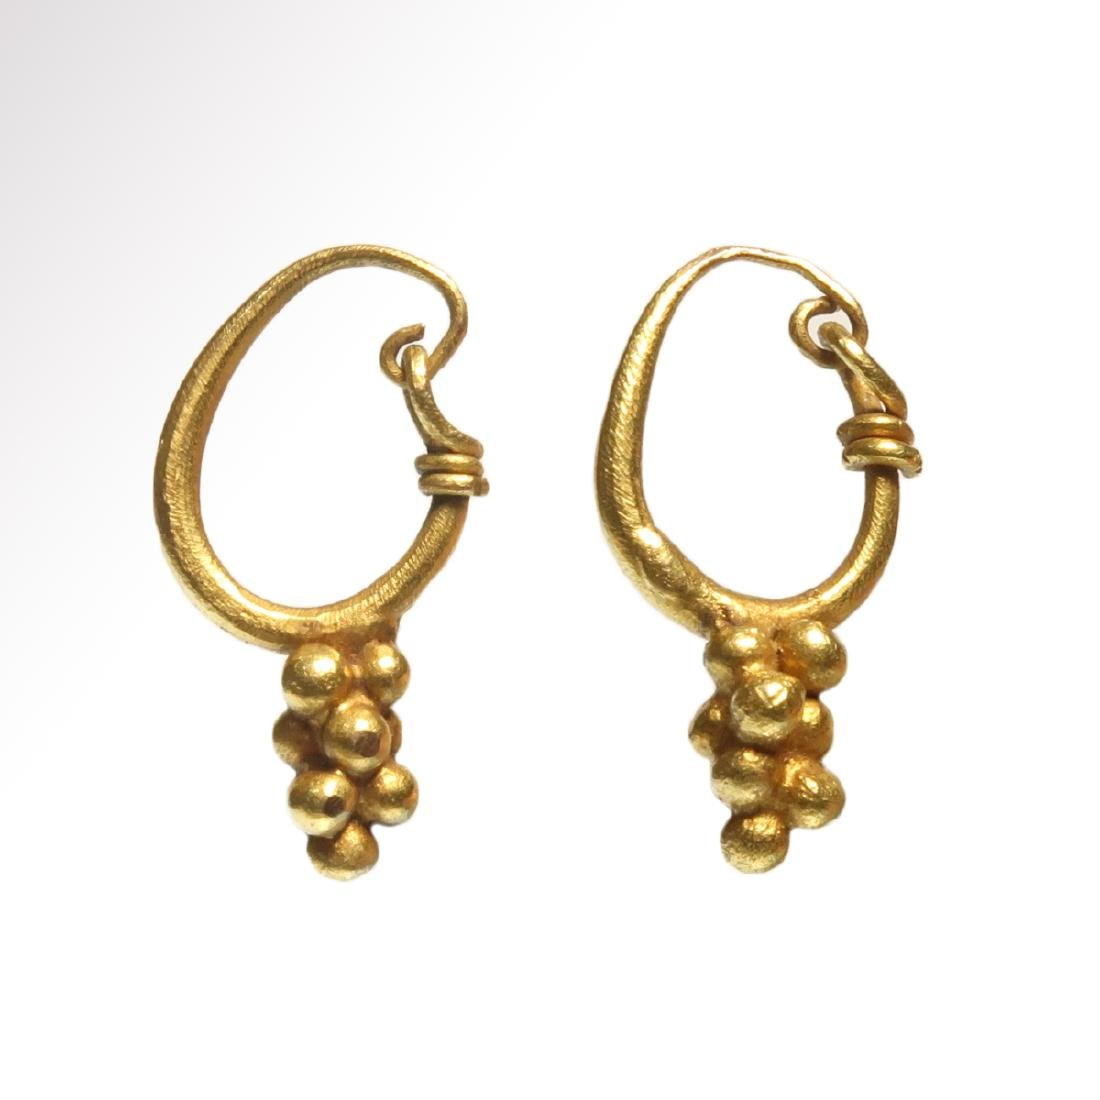 Roman Gold Earrings with Grape Drops, c. 1st - 3rd